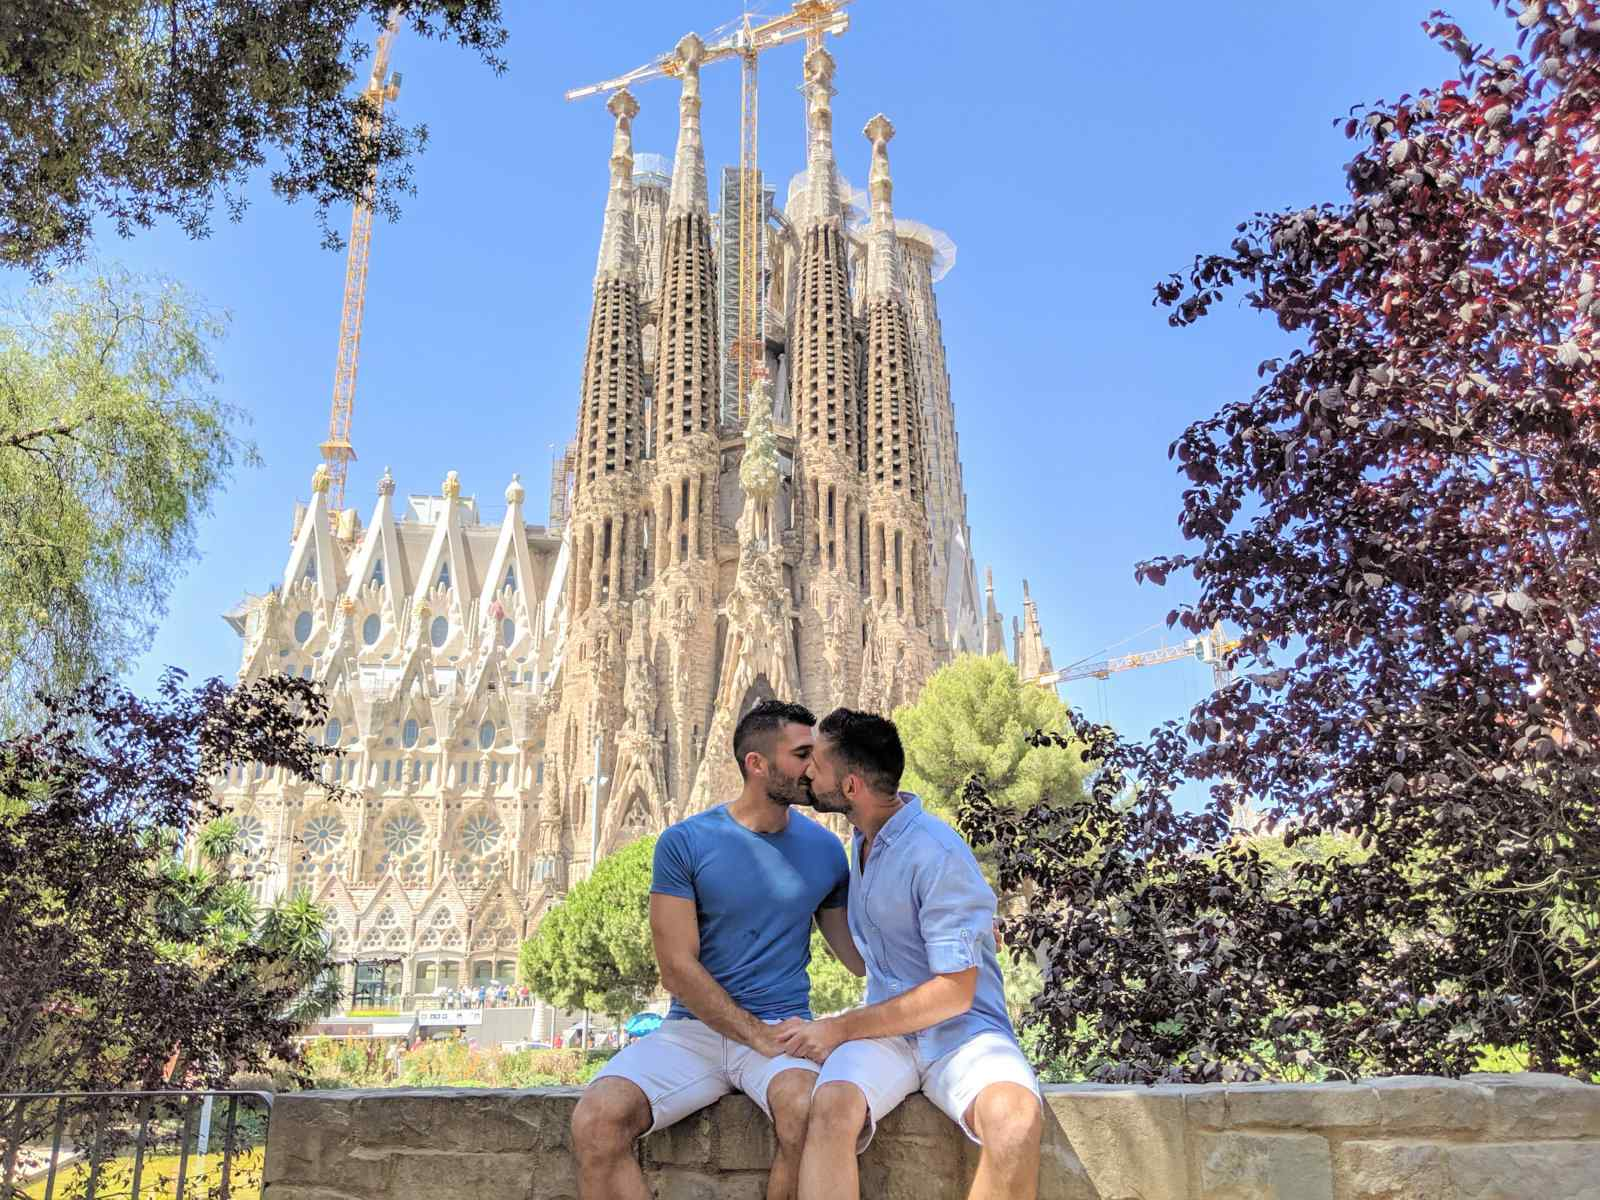 Learn about Gaudi's masterpiece and other amazing architecture on the Modernist House Tour - one of the best gay tours to do in Barcelona